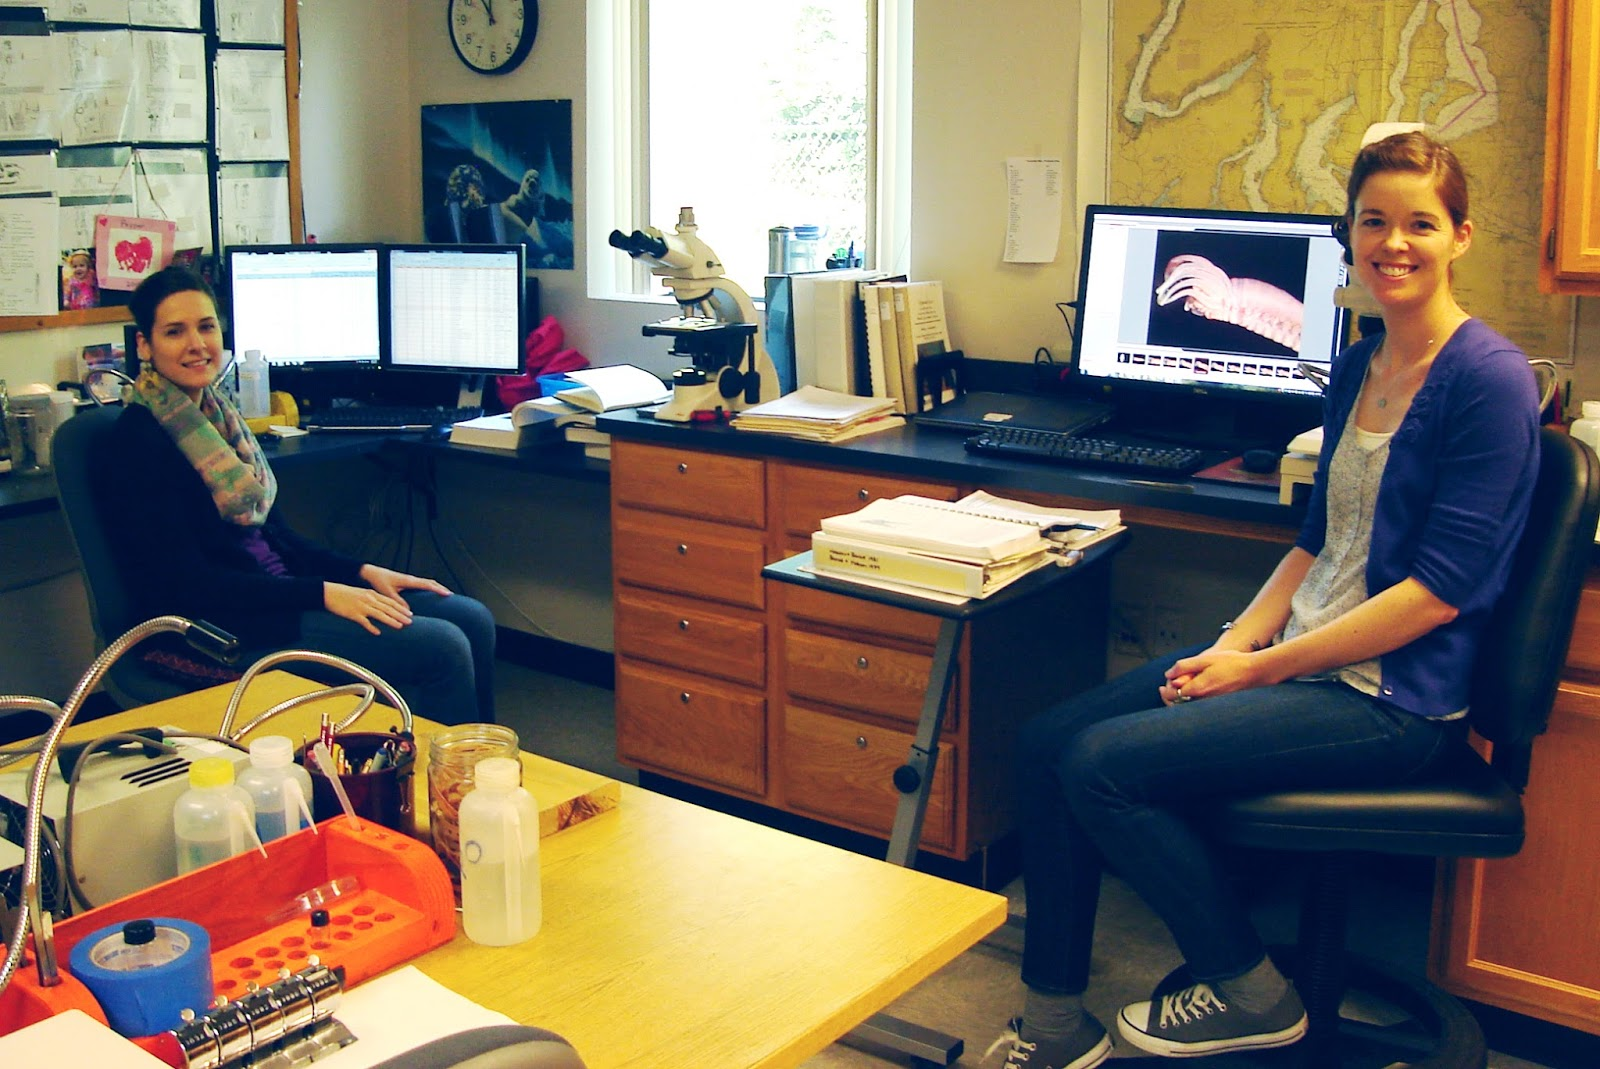 Two scientists sit beside desk in benthic lab with invertebrate image on computer screen.